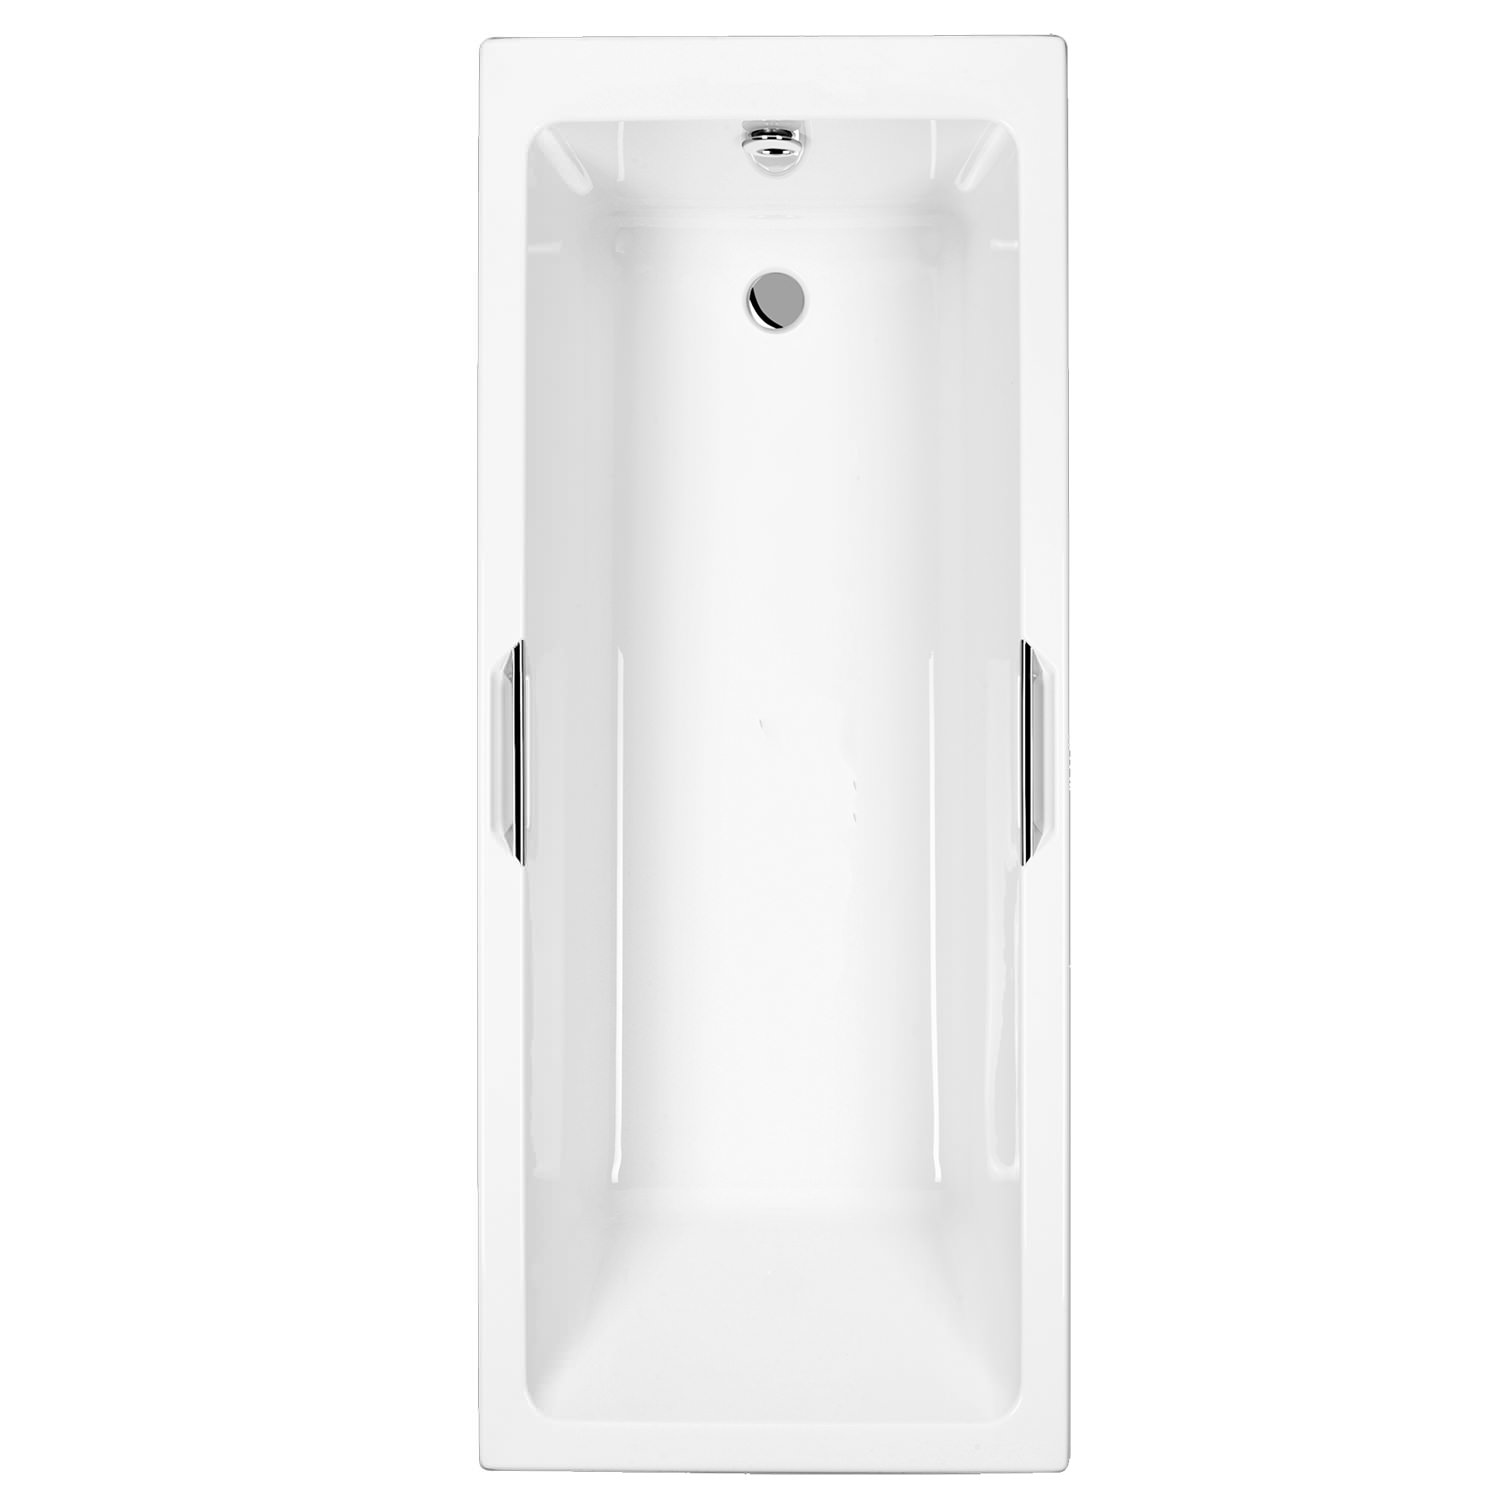 Quantum Integra Single Ended 5mm Acrylic Bath With Grips 1700 x 700mm